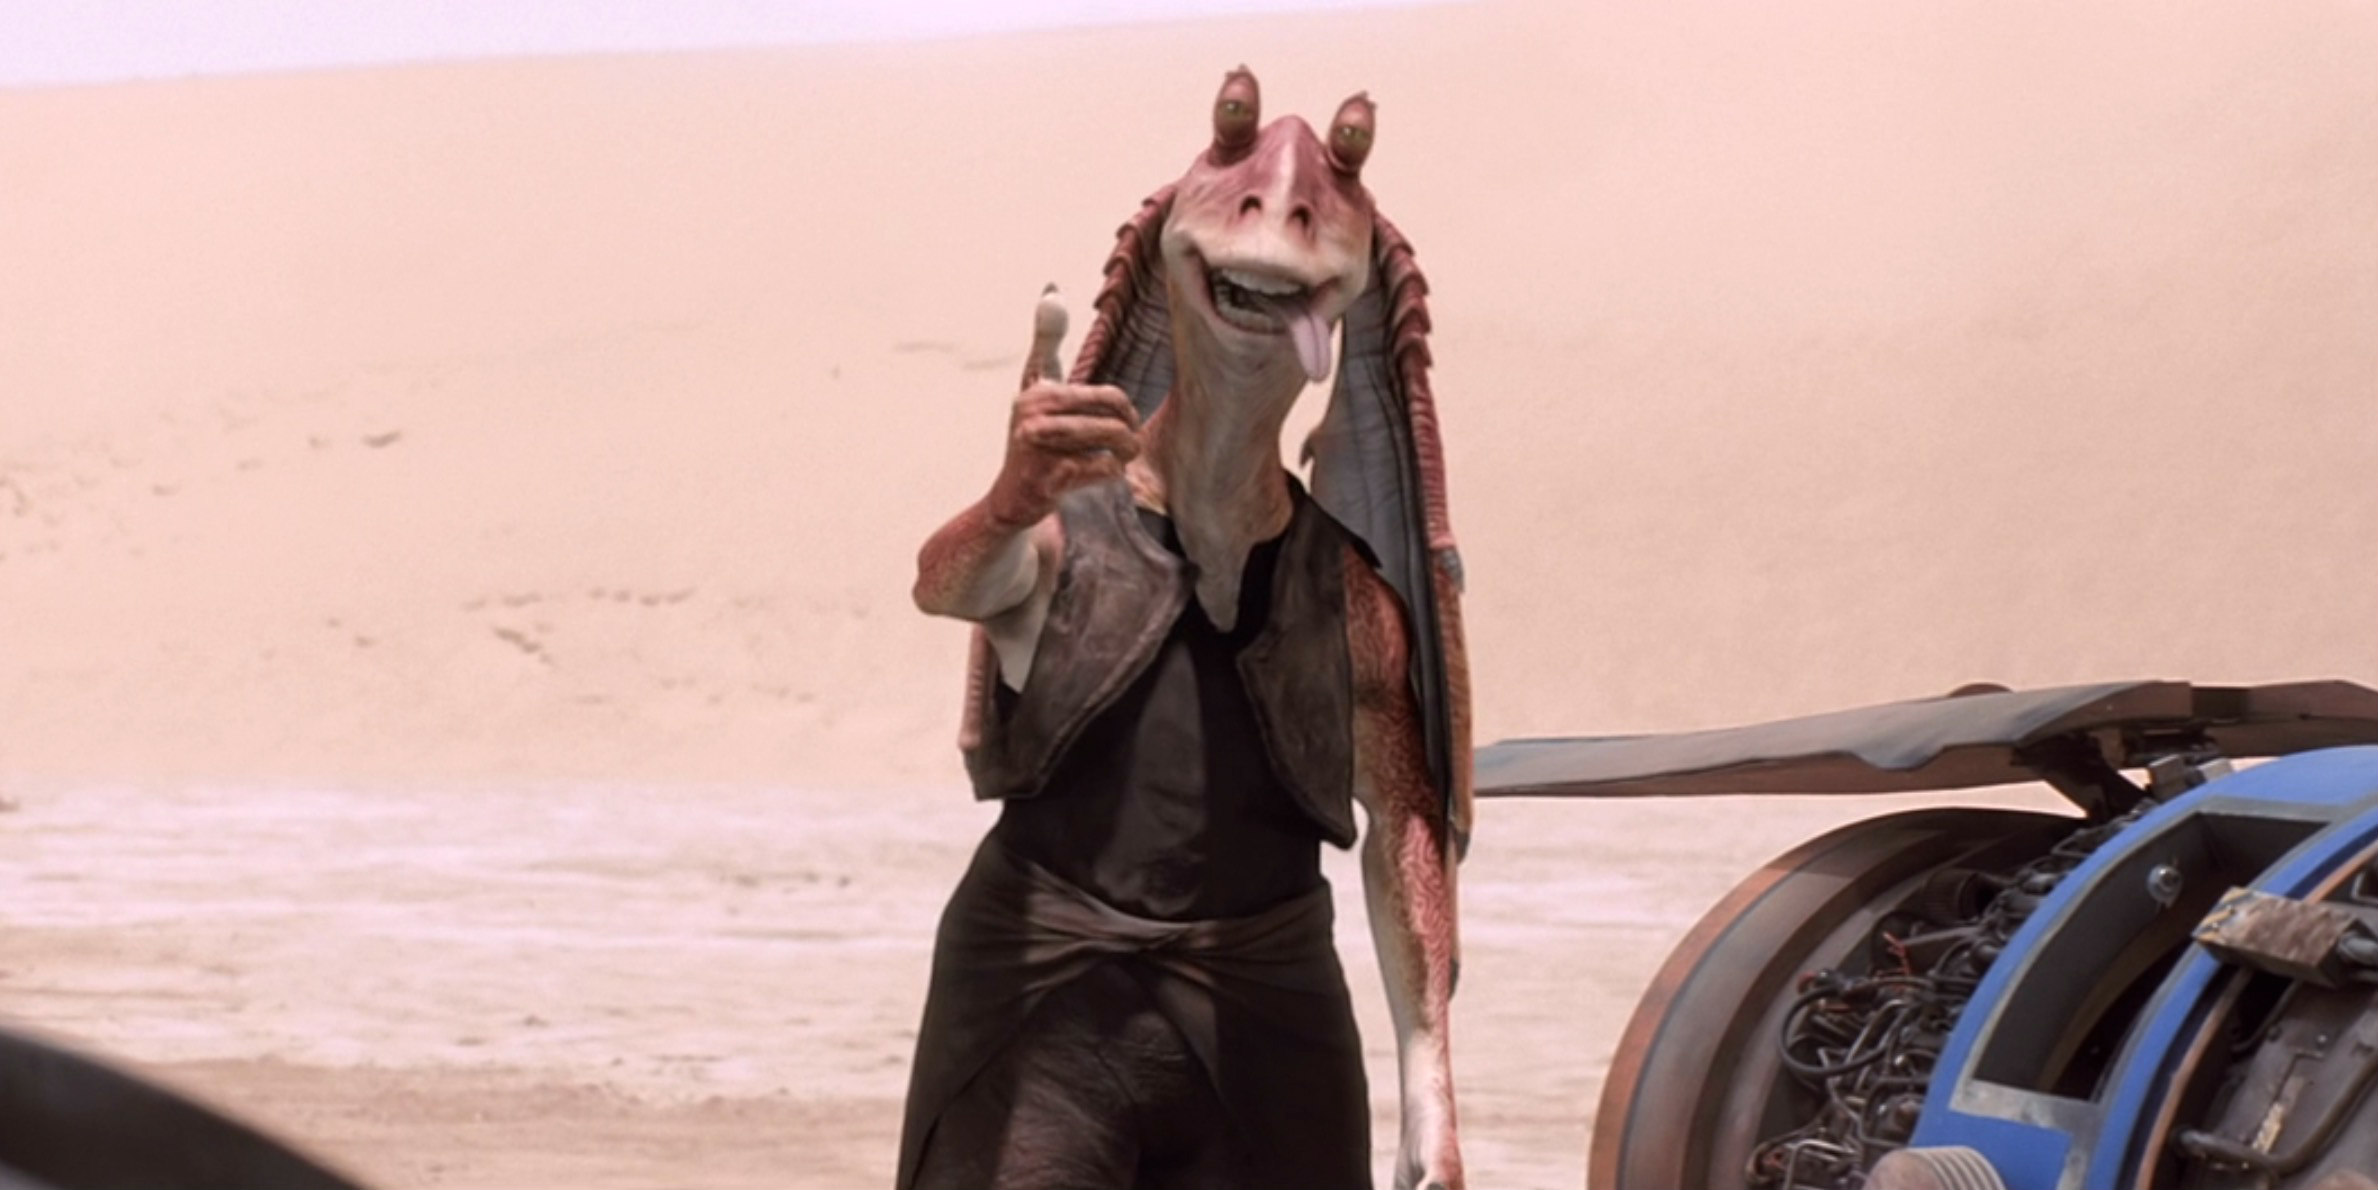 The Actor Who Played Jar Jar Binks Believes Star Wars Has Become Too Adult